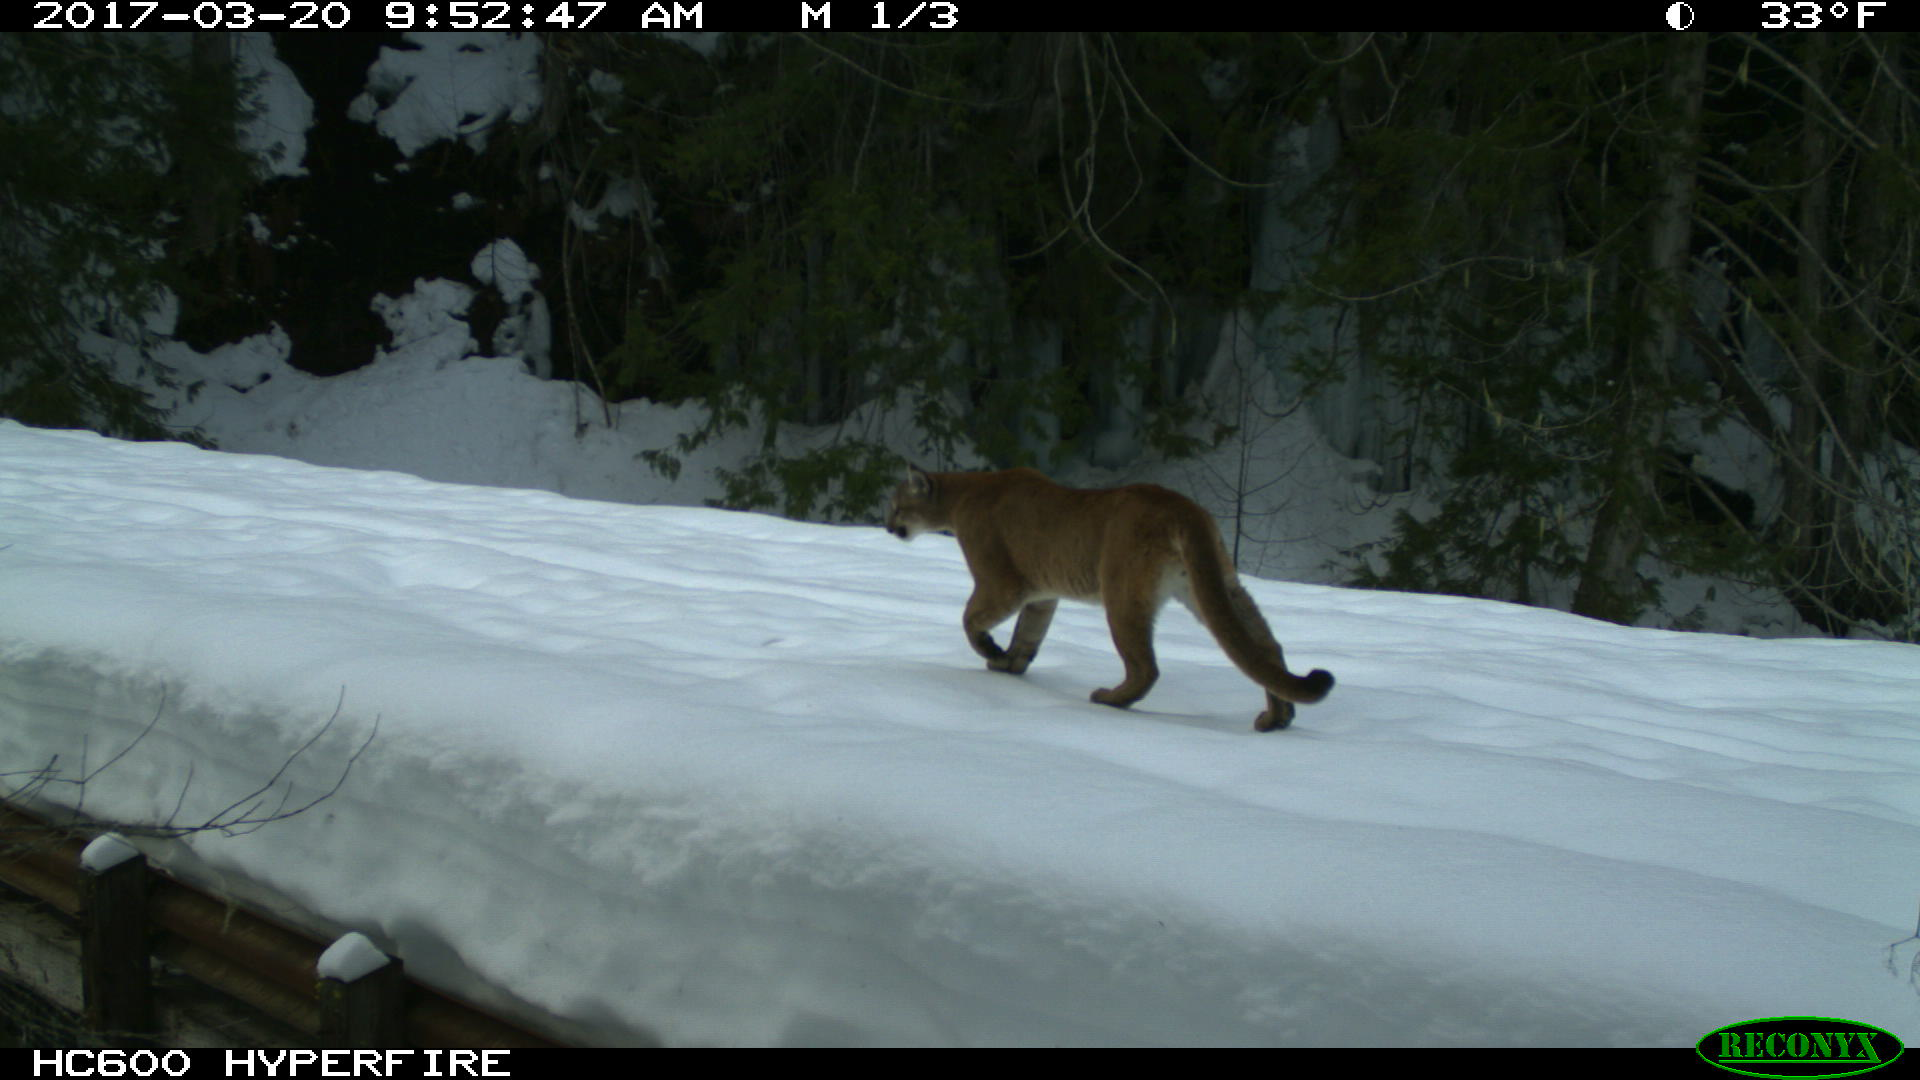 Mountain lion walking on snow. 2017-03-20, 9:52:47 AM, 33˚F